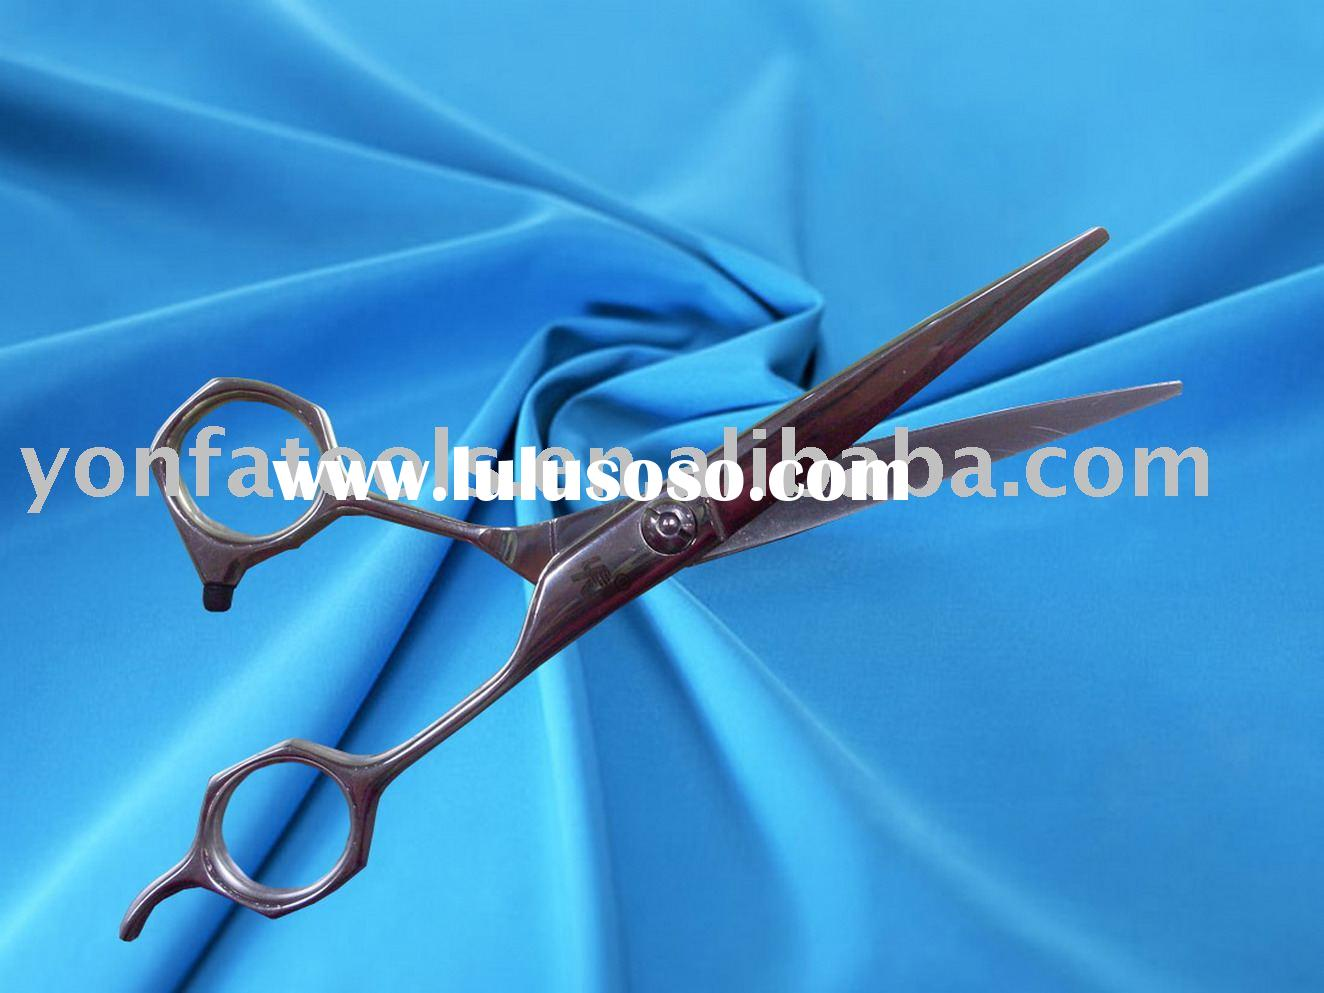 hair scissors,hair cutting scissor,barber scissors,hairdressing